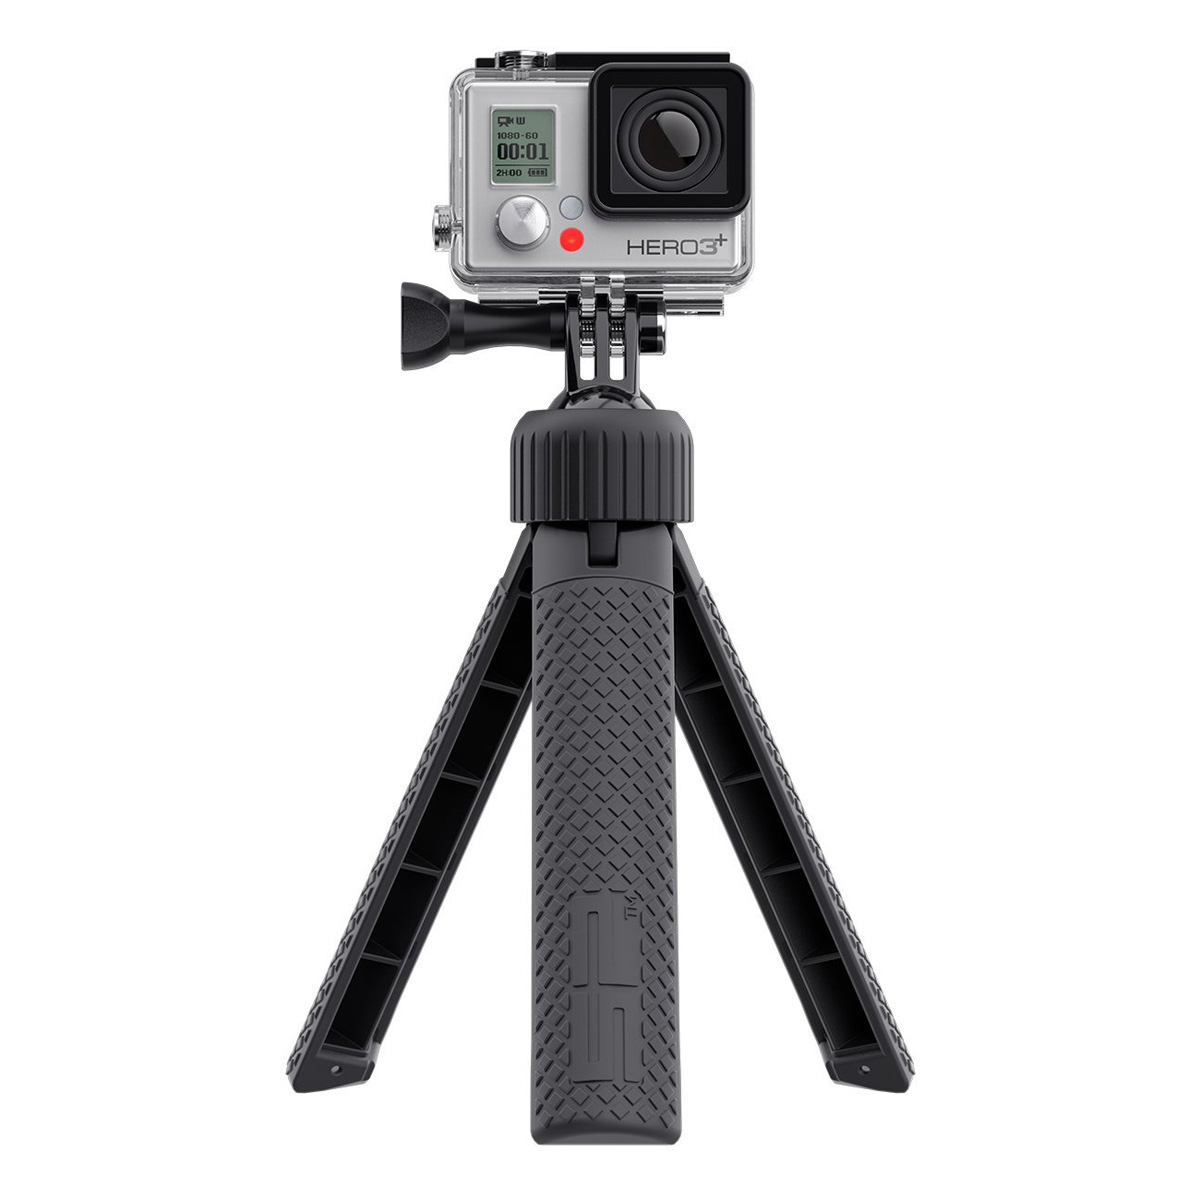 Click here for Tripod Grip prices